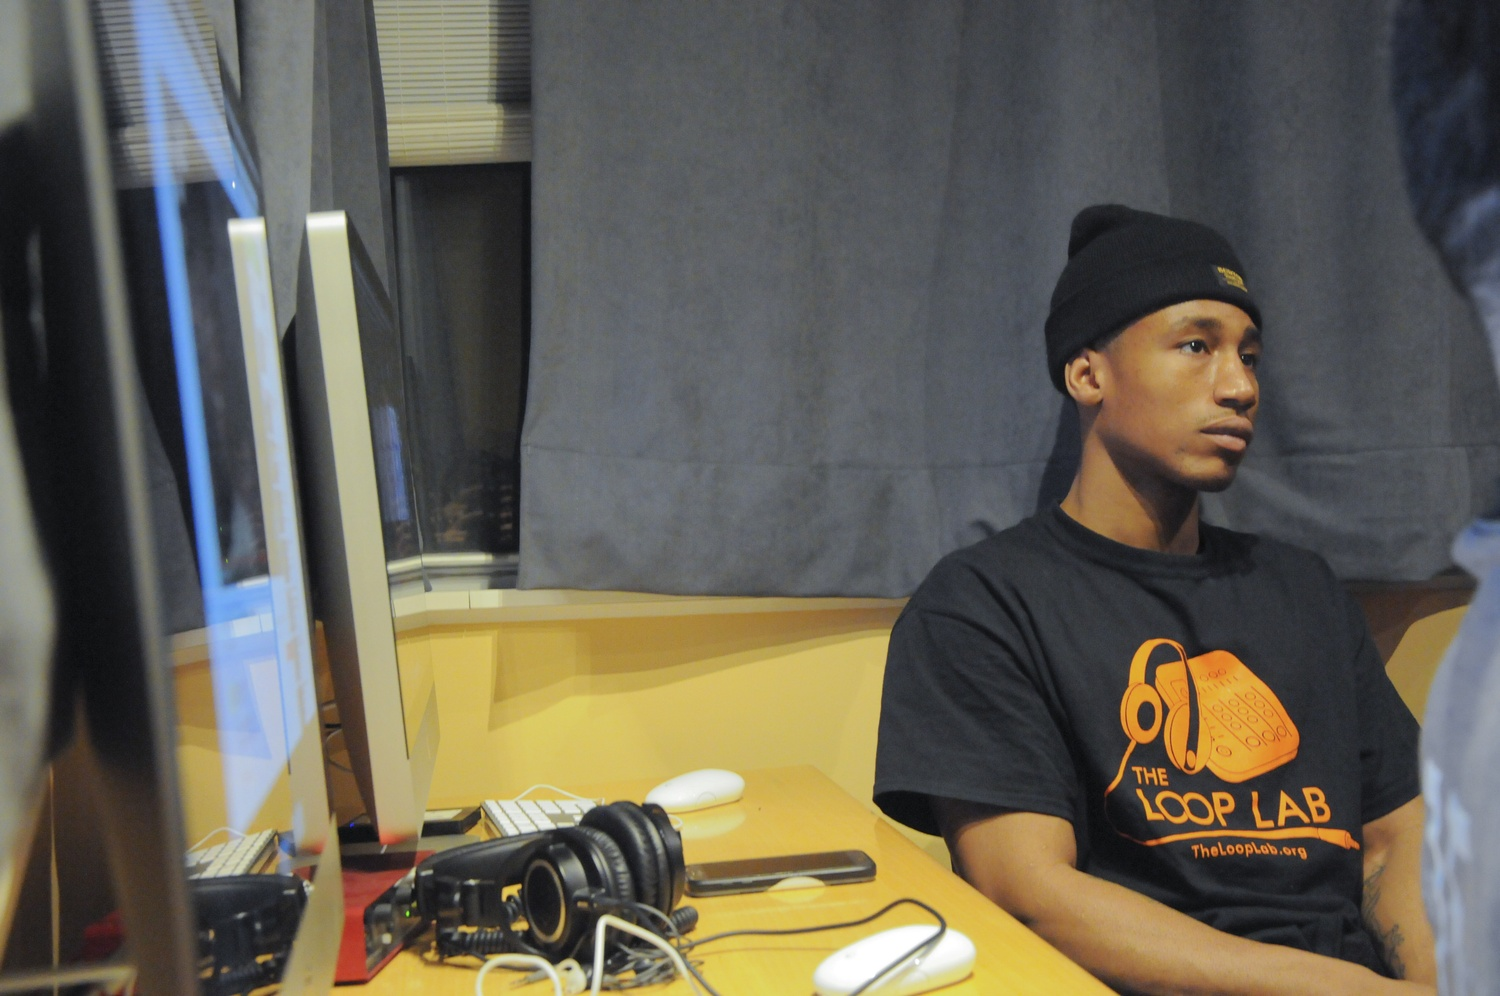 Tevin Charles, a resident of an underrepresented neighborhood in Cambridge called the Port, is focused on preparing for his final project at the Loop Lab by utilizing professional recording equipment.